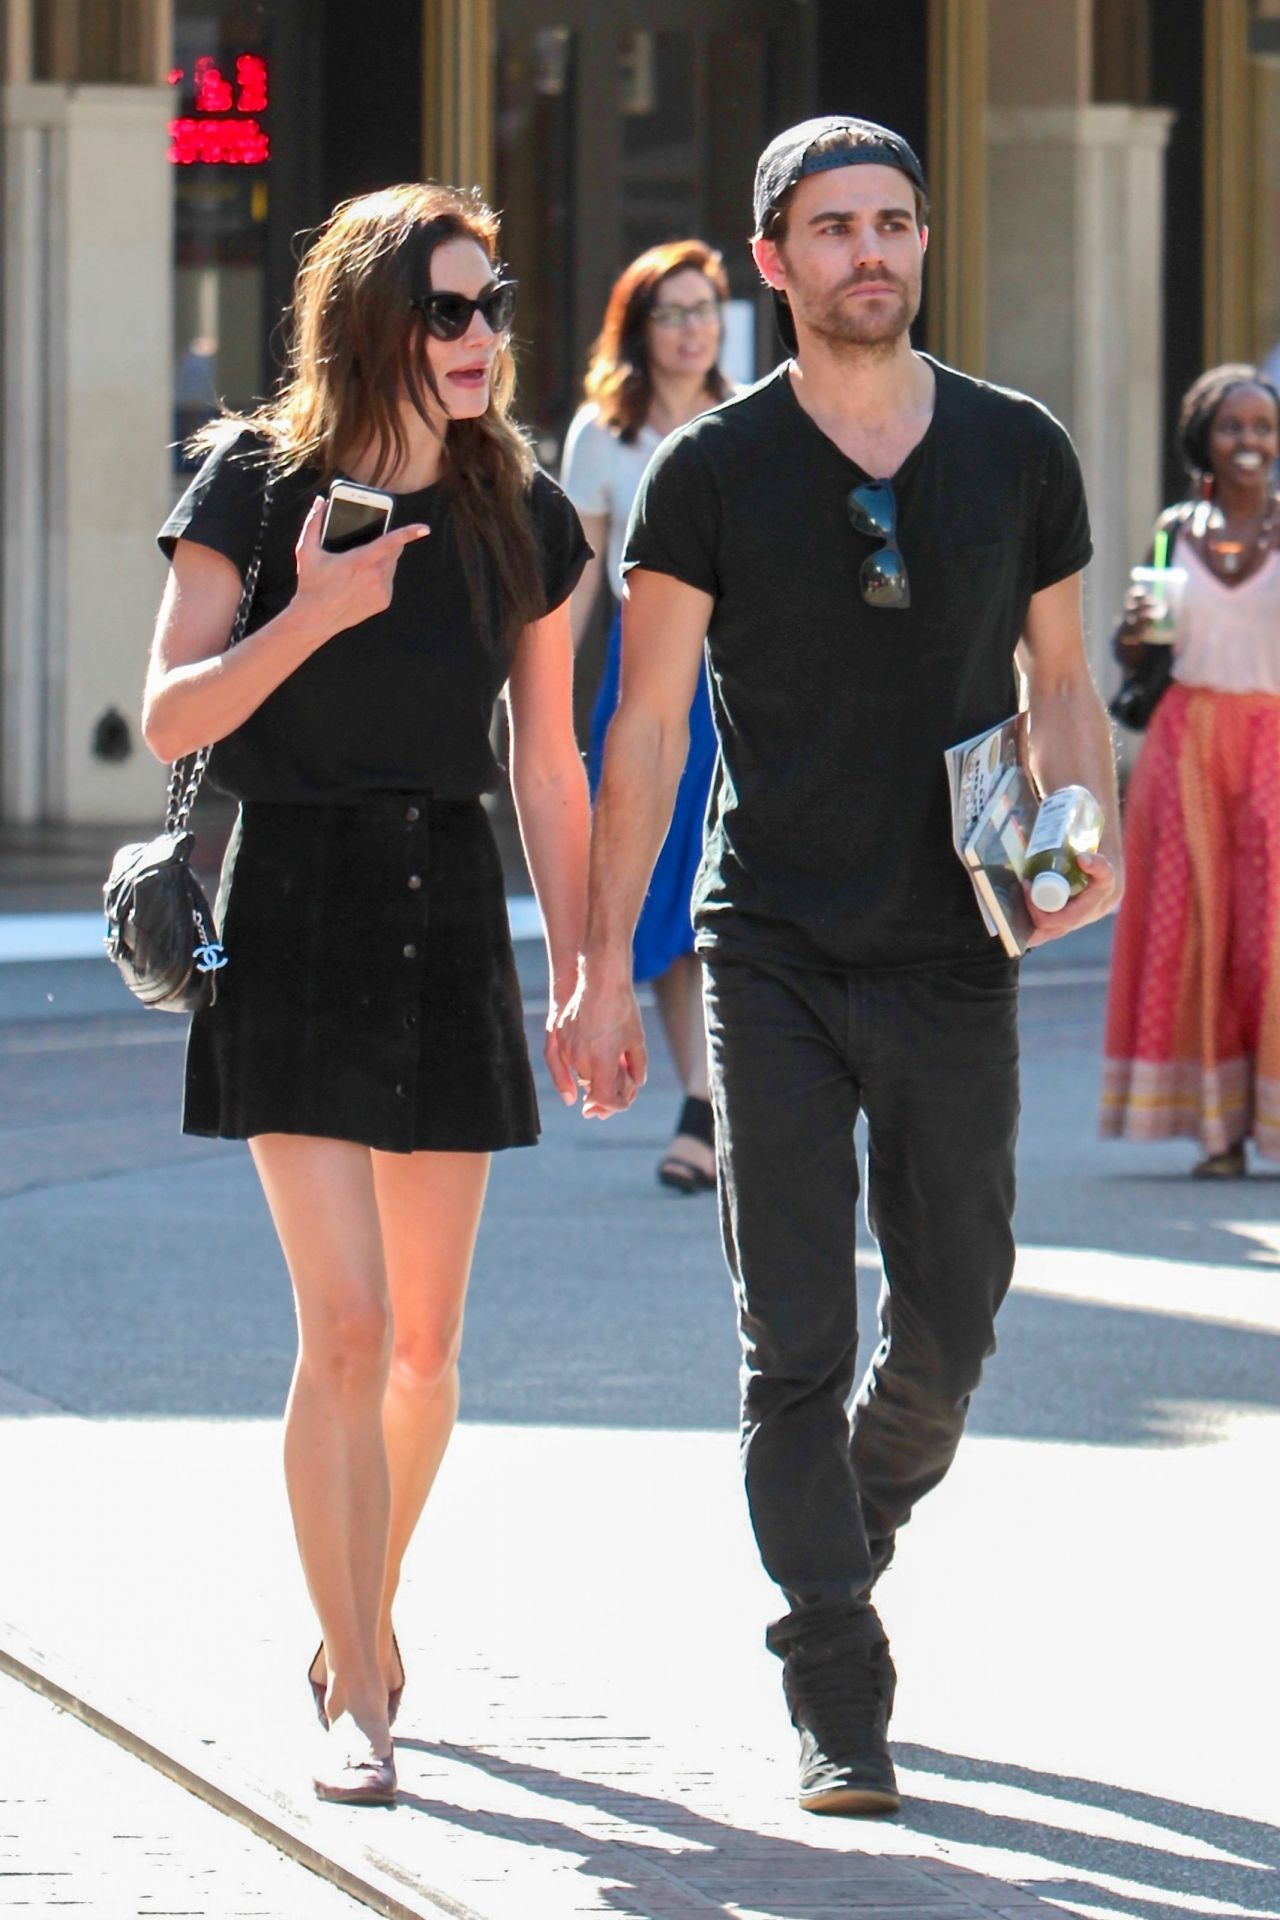 Phoebe Tonkin Stock Pictures, Royalty-free Photos & Images ... |Thomas Mcdonell And Phoebe Tonkin